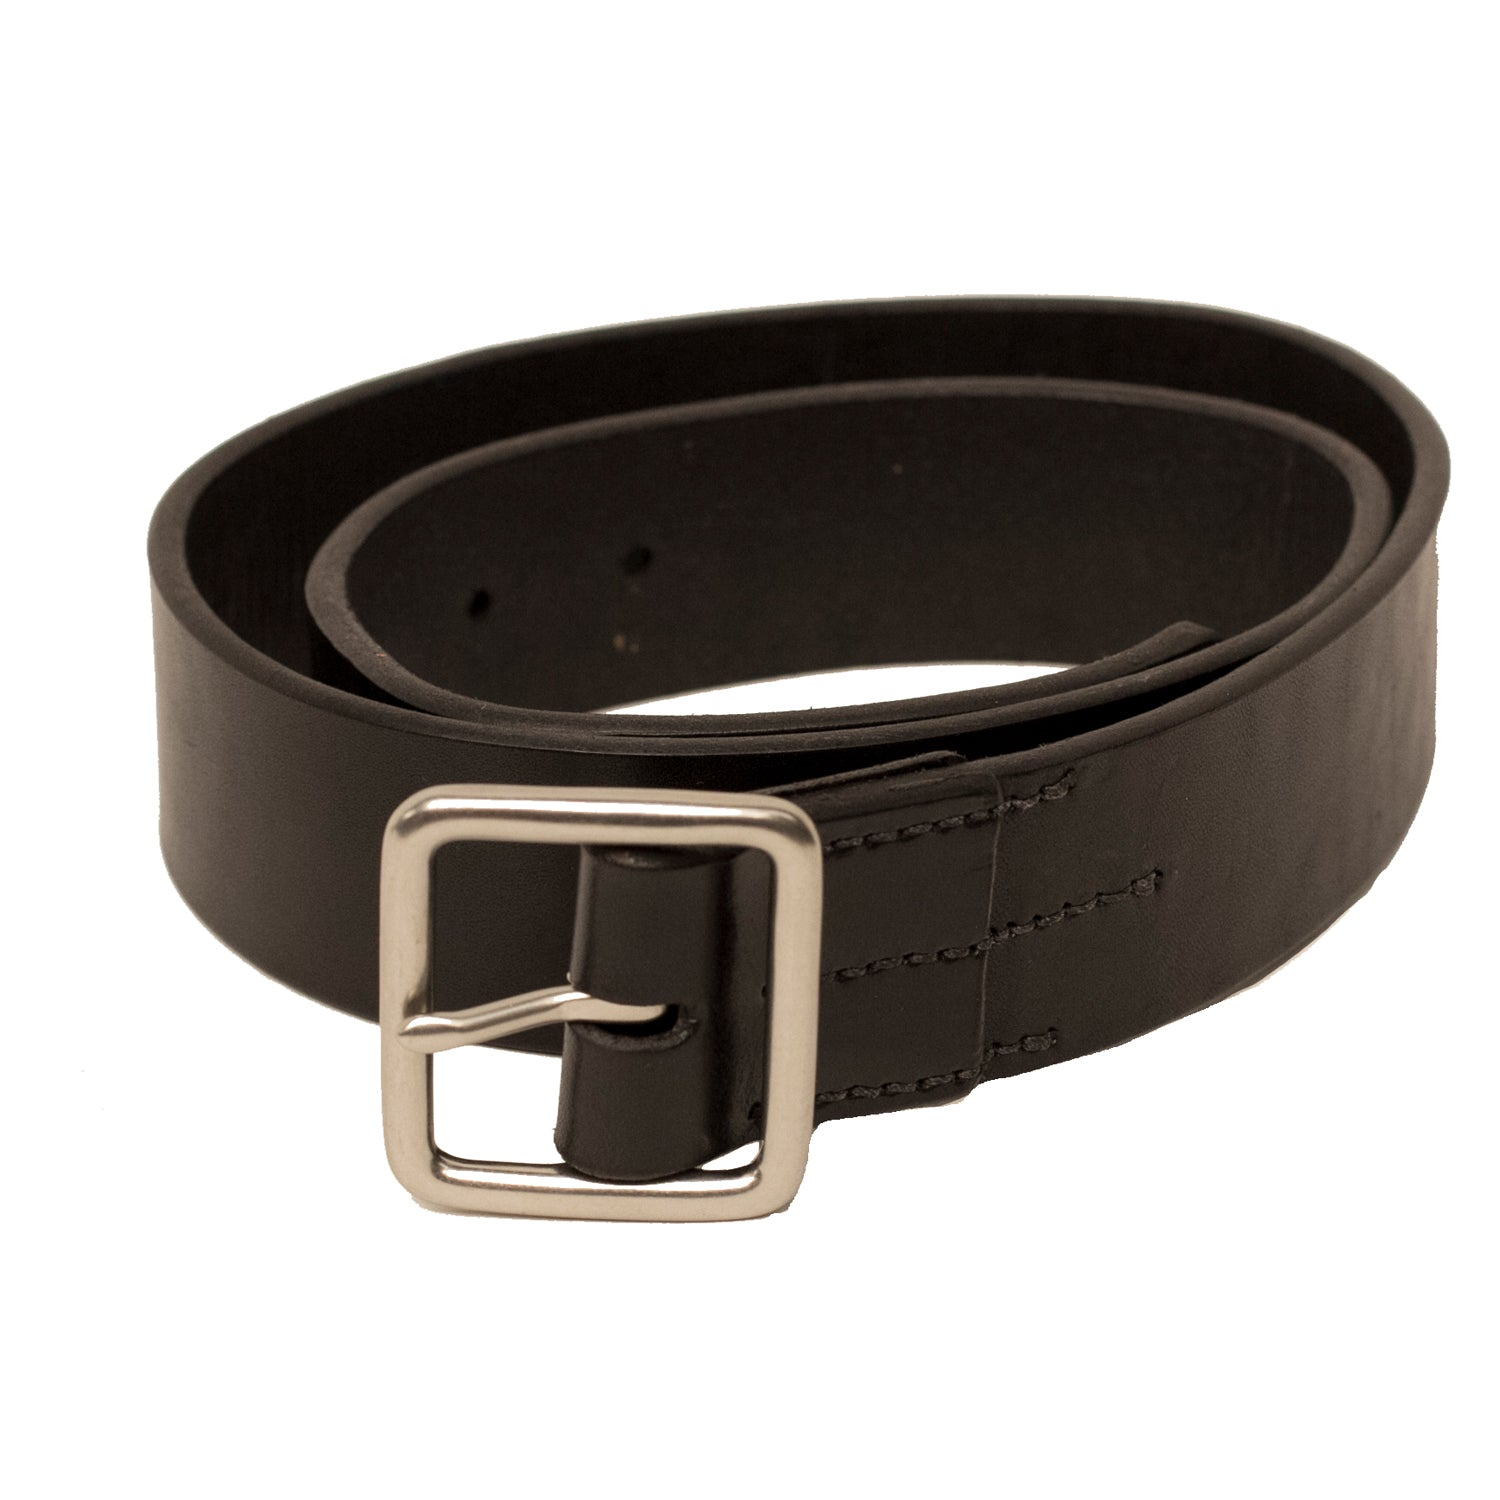 Red Wing 96564 Vegetable-Tanned Leather Belt Black English Bridle